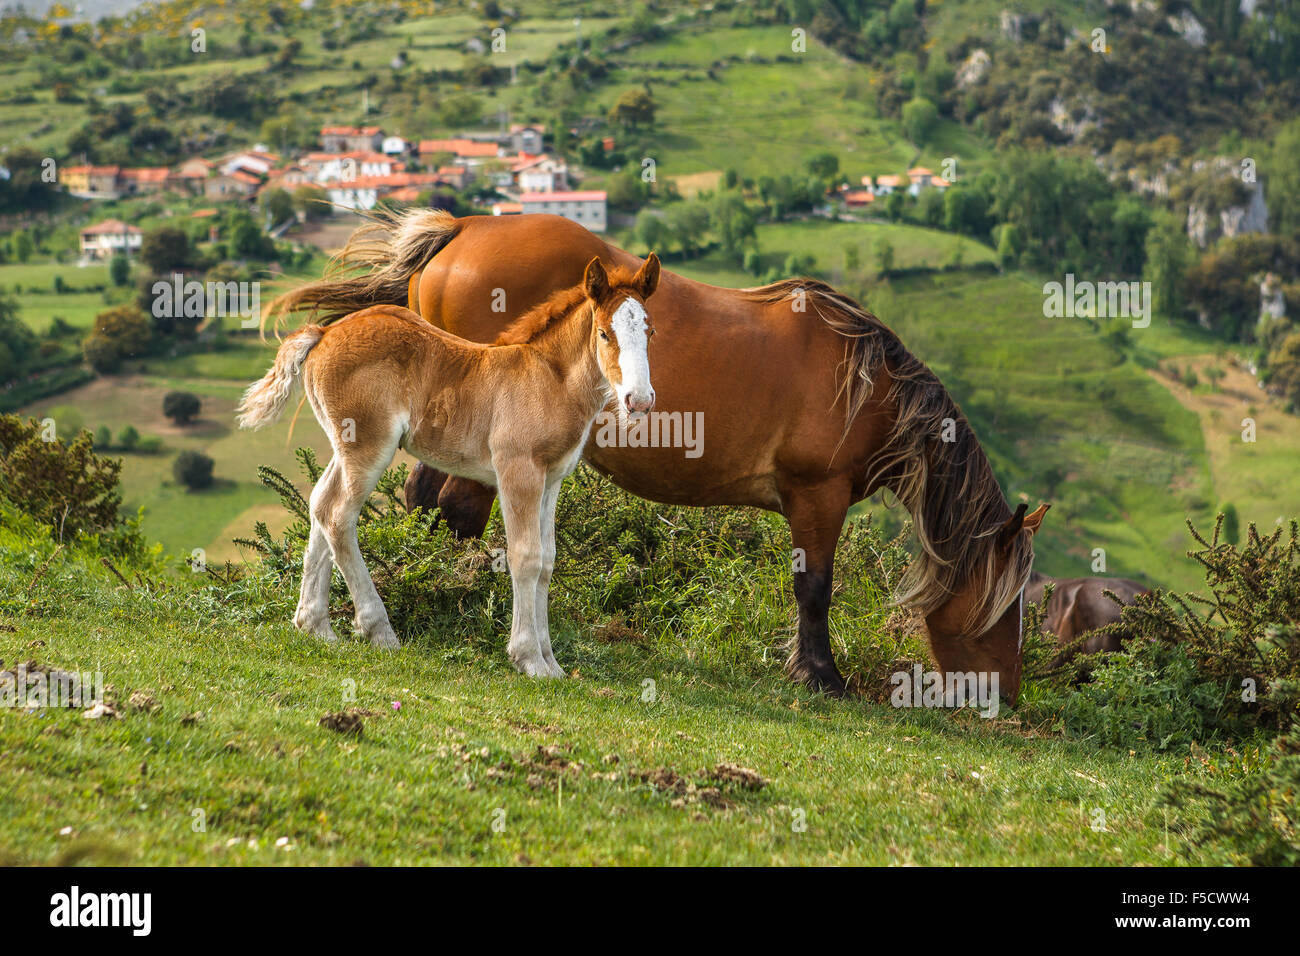 Two horses (a broadmare and her foal) in Pendes, by the Picos de Europa National Park, Liébana, Cantabria, - Stock Image